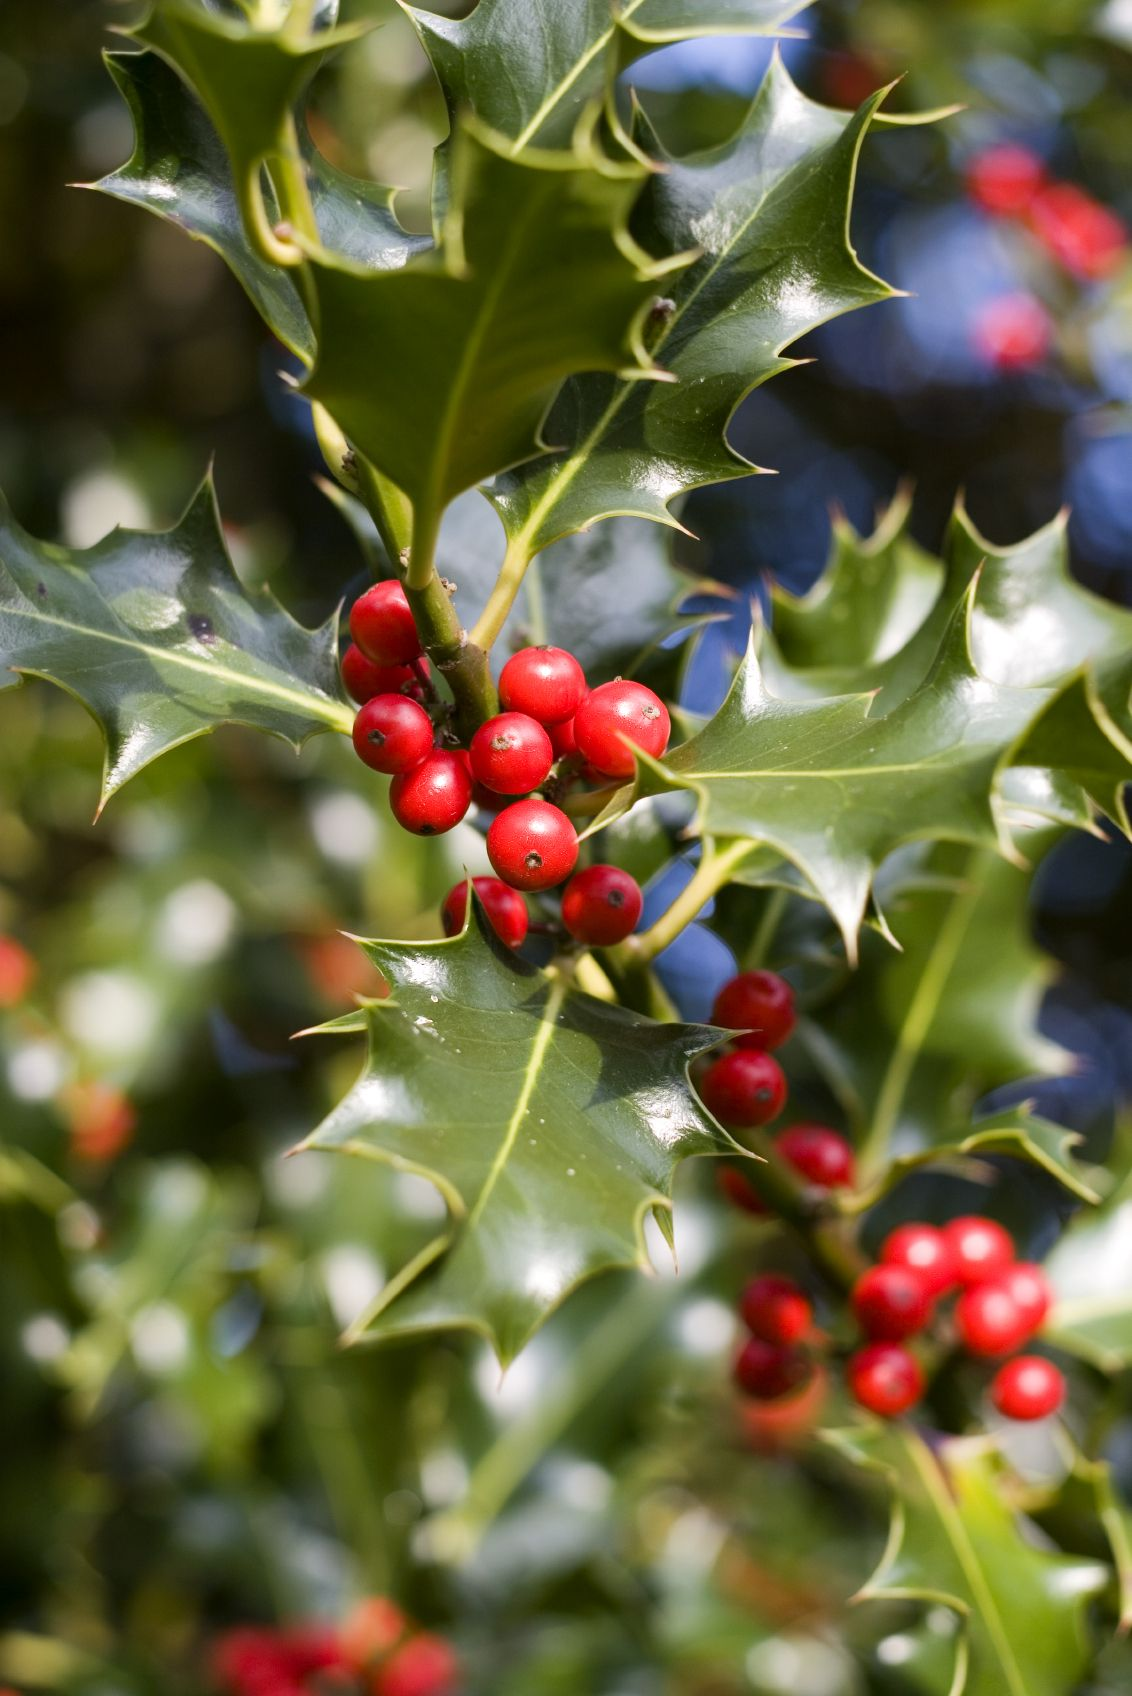 5 poisonous berries that you should steer clear of u2013 and 3 wild